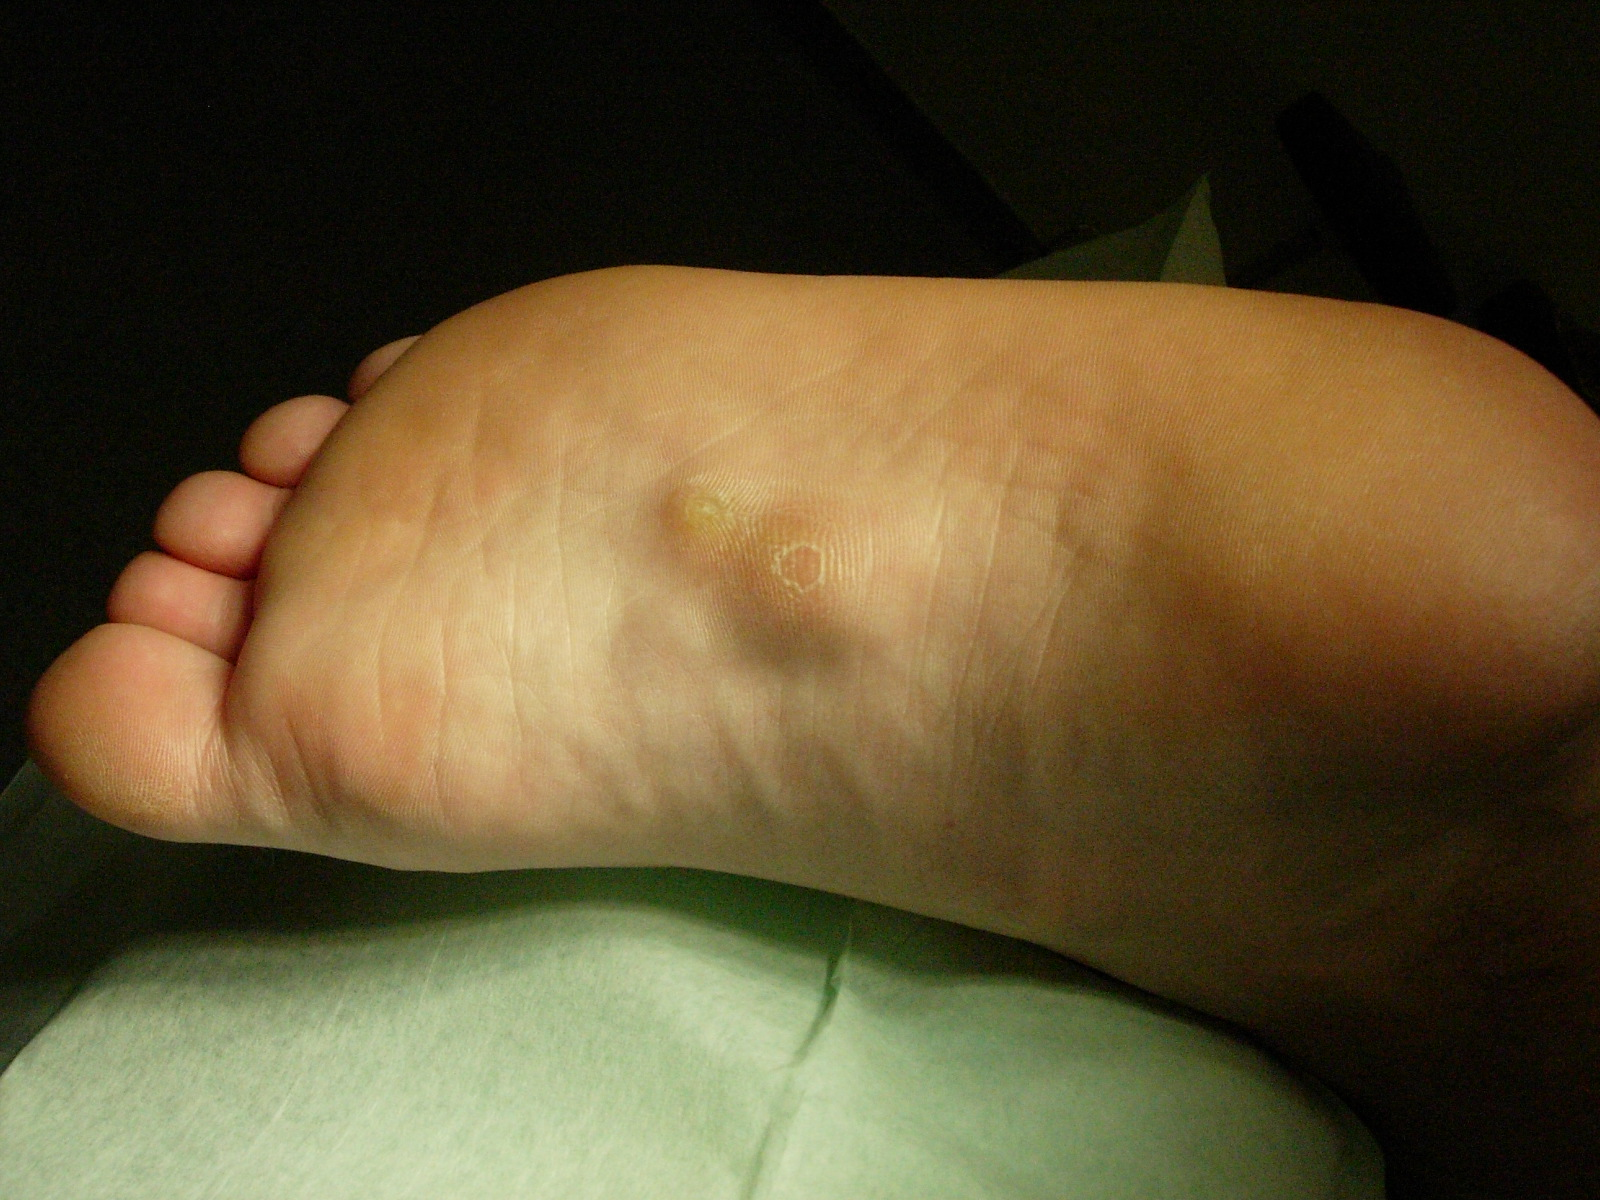 Round Hard Bumps On My Heel And Running Shoes